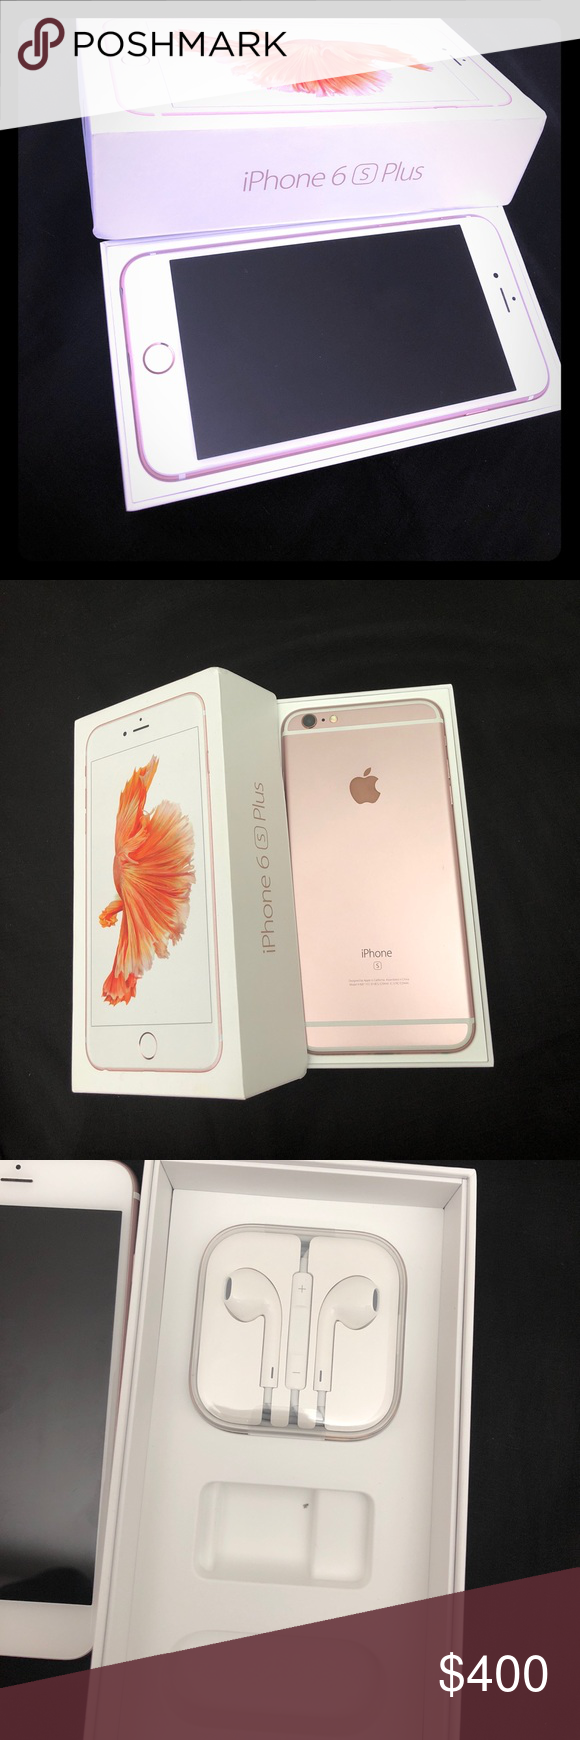 iPhone 6s Plus Rose Gold (TMobile) 64gb In great working